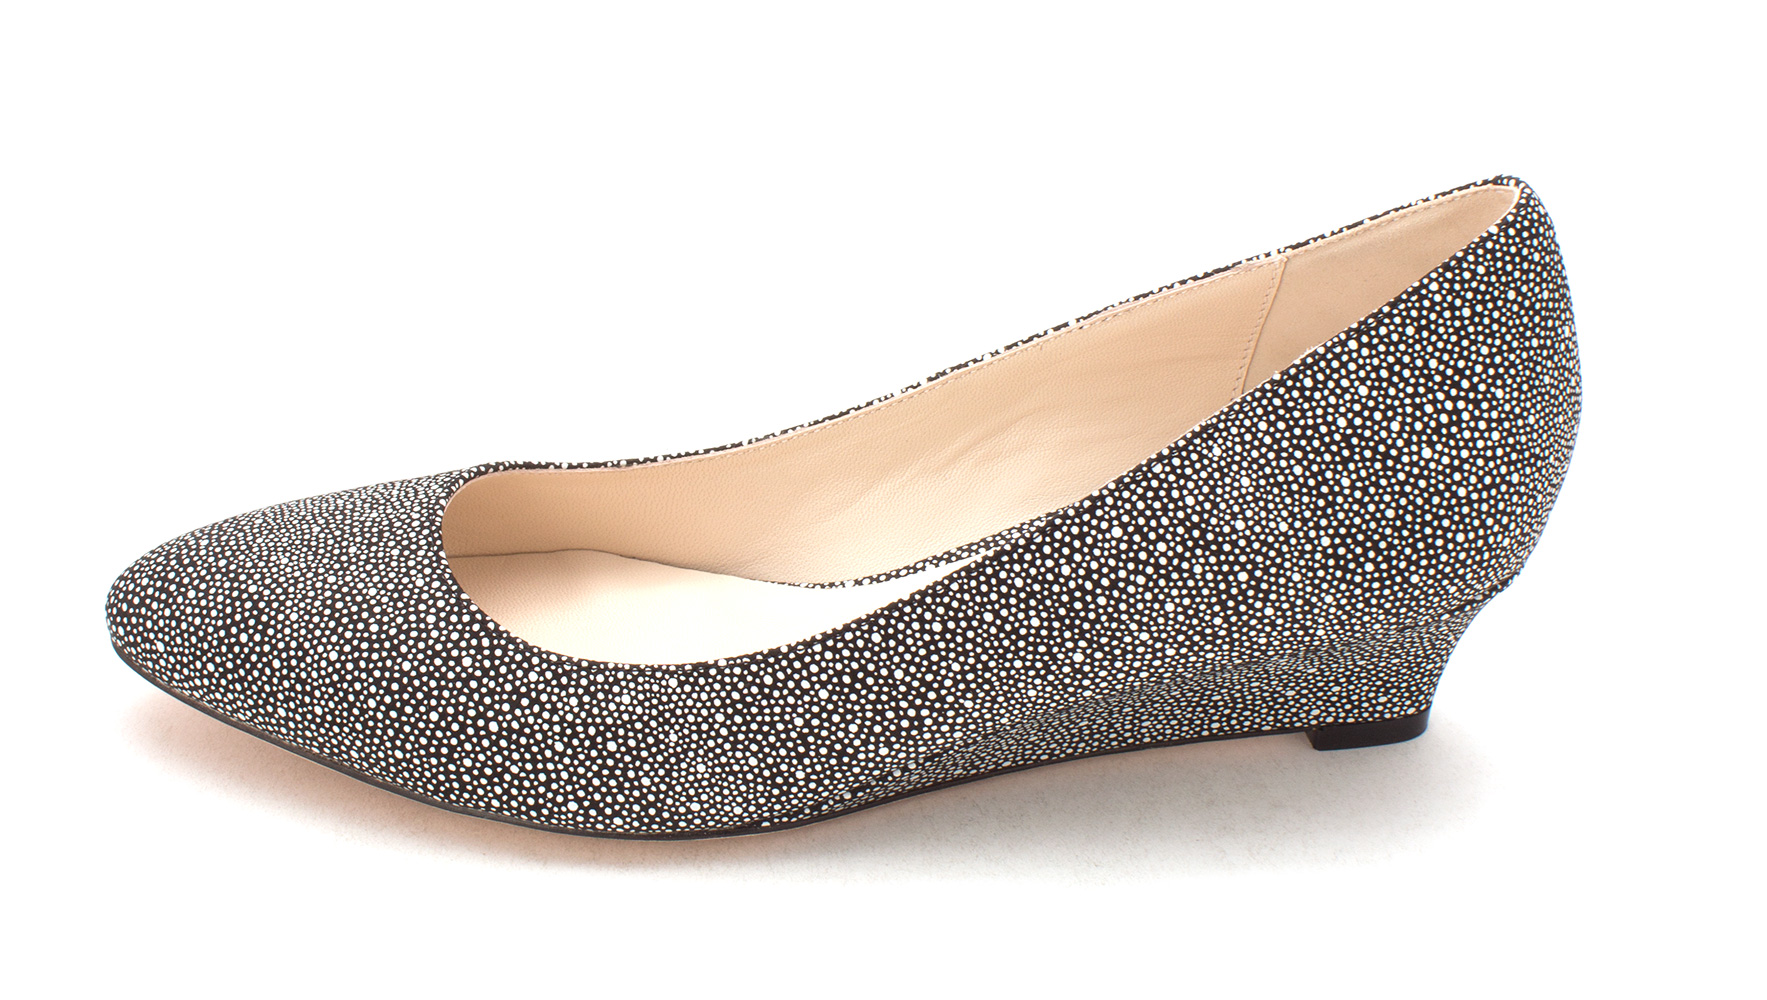 Cole Haan Womens 13A4173 Closed Toe Wedge Pumps Black/White Size 6.0